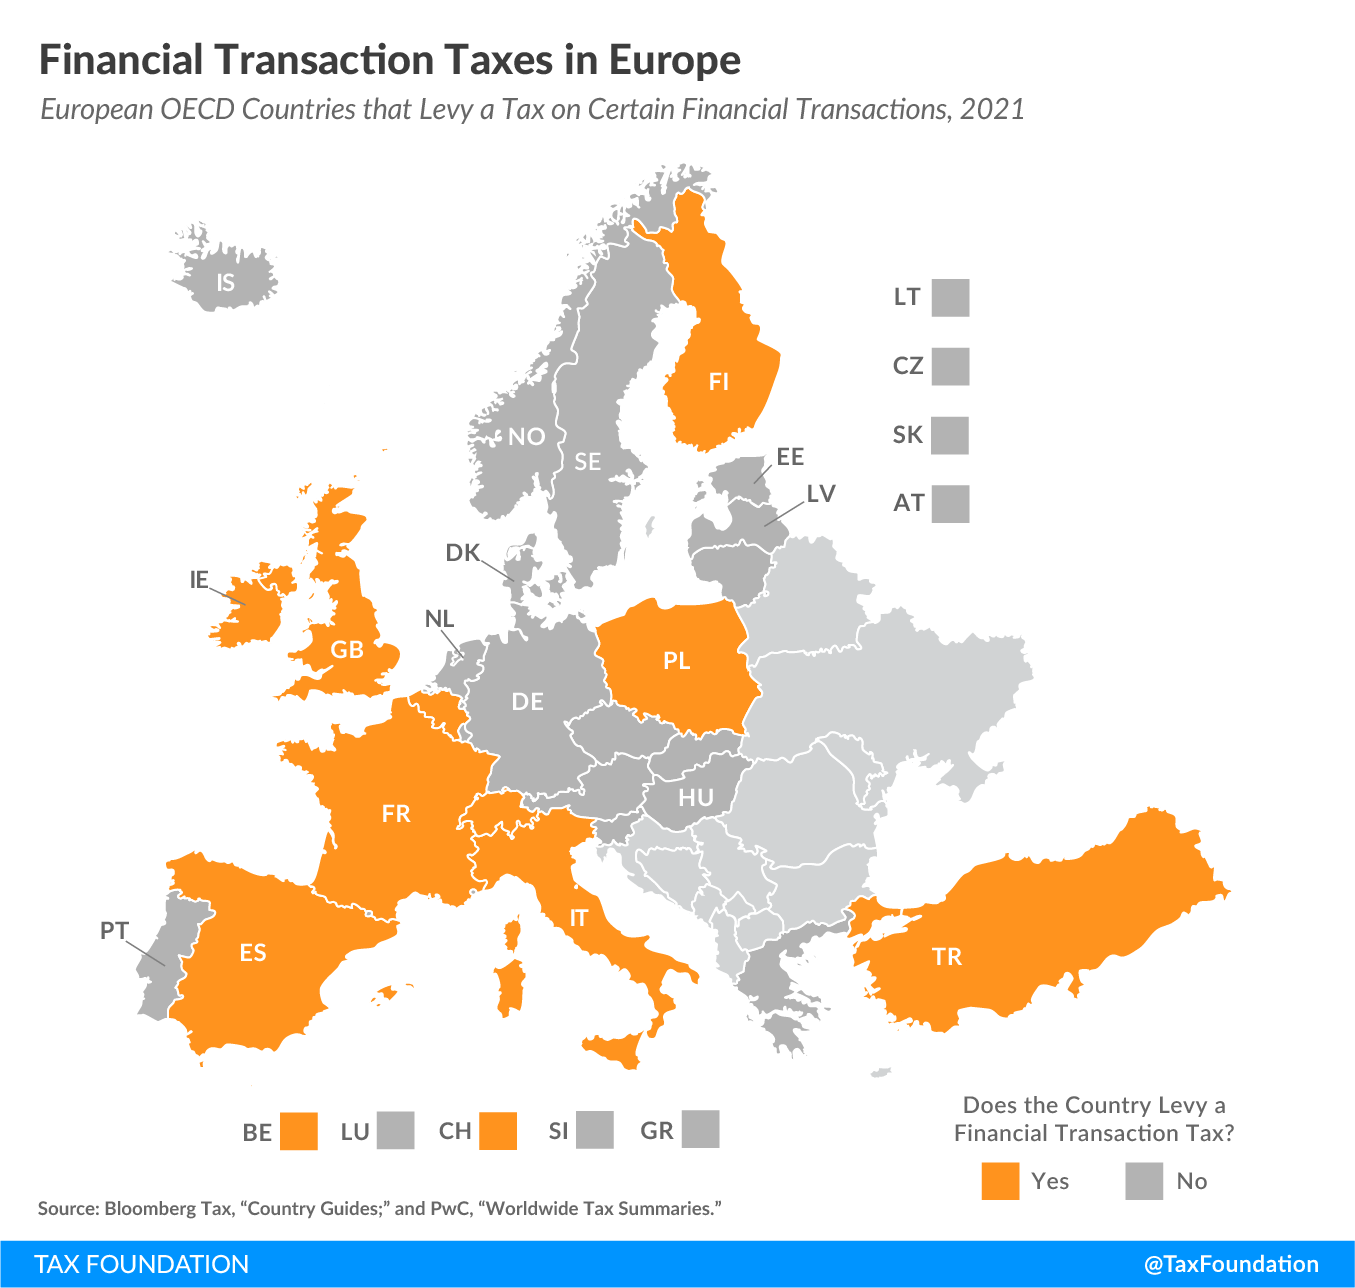 2021 financial transaction taxes in Europe, 2021 financial transaction tax Europe. European OECD countries impose a type of FTT.